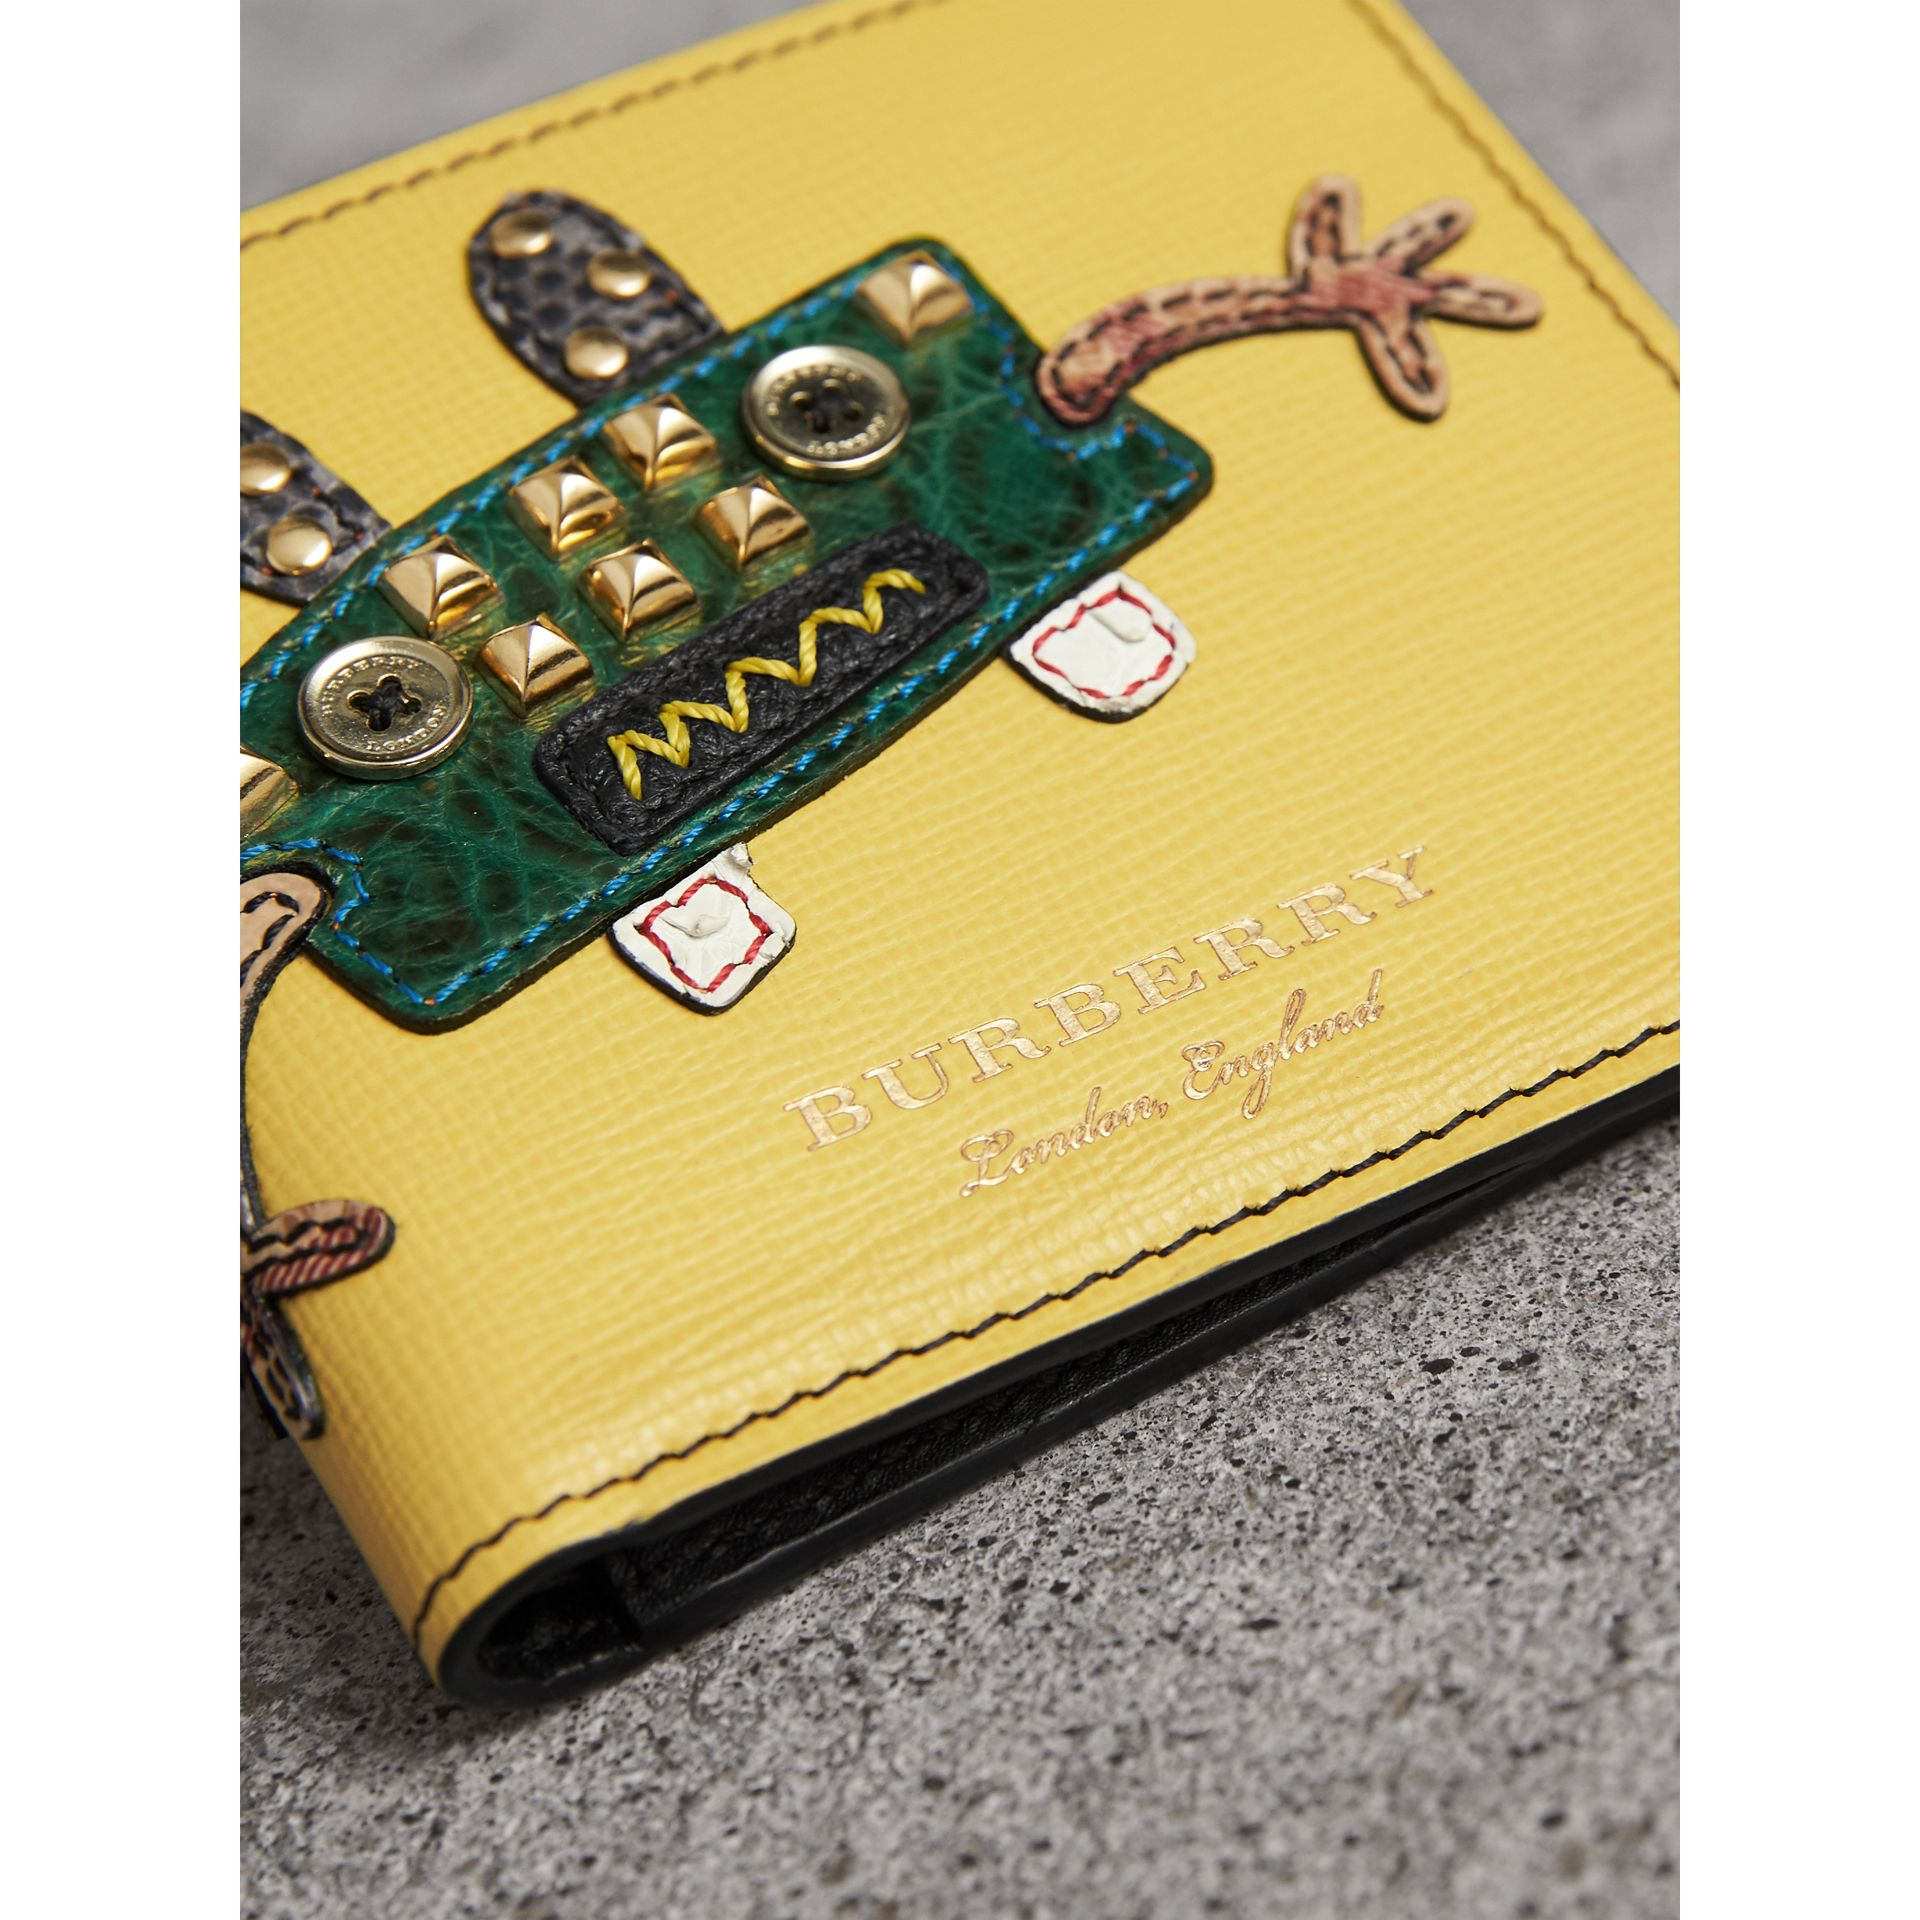 Creature Appliqué Leather International Bifold Wallet in Ochre Yellow - Men | Burberry United Kingdom - gallery image 2